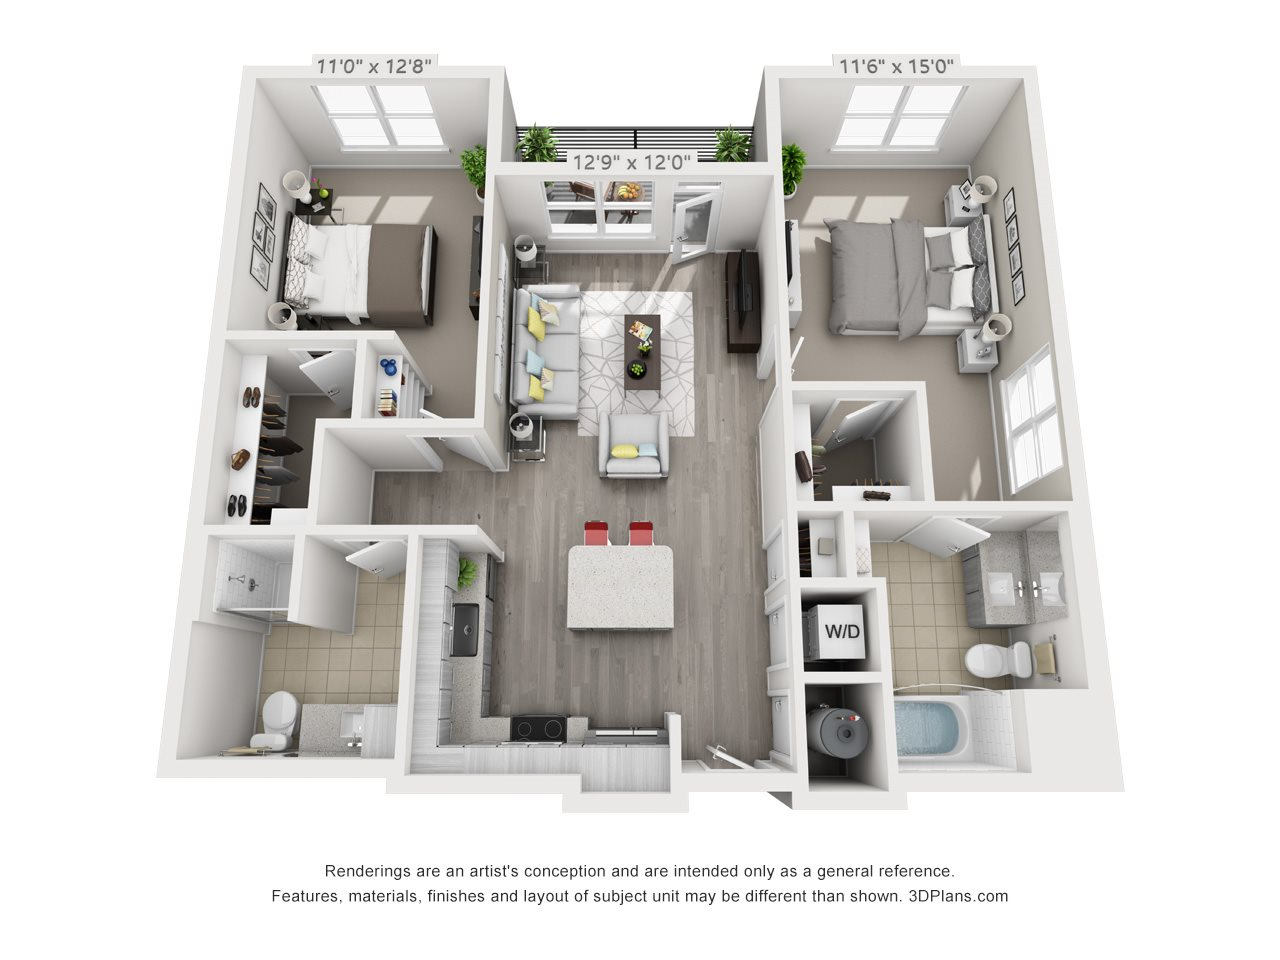 B1 2 BEDROOM/2 BATH Floor Plan 12